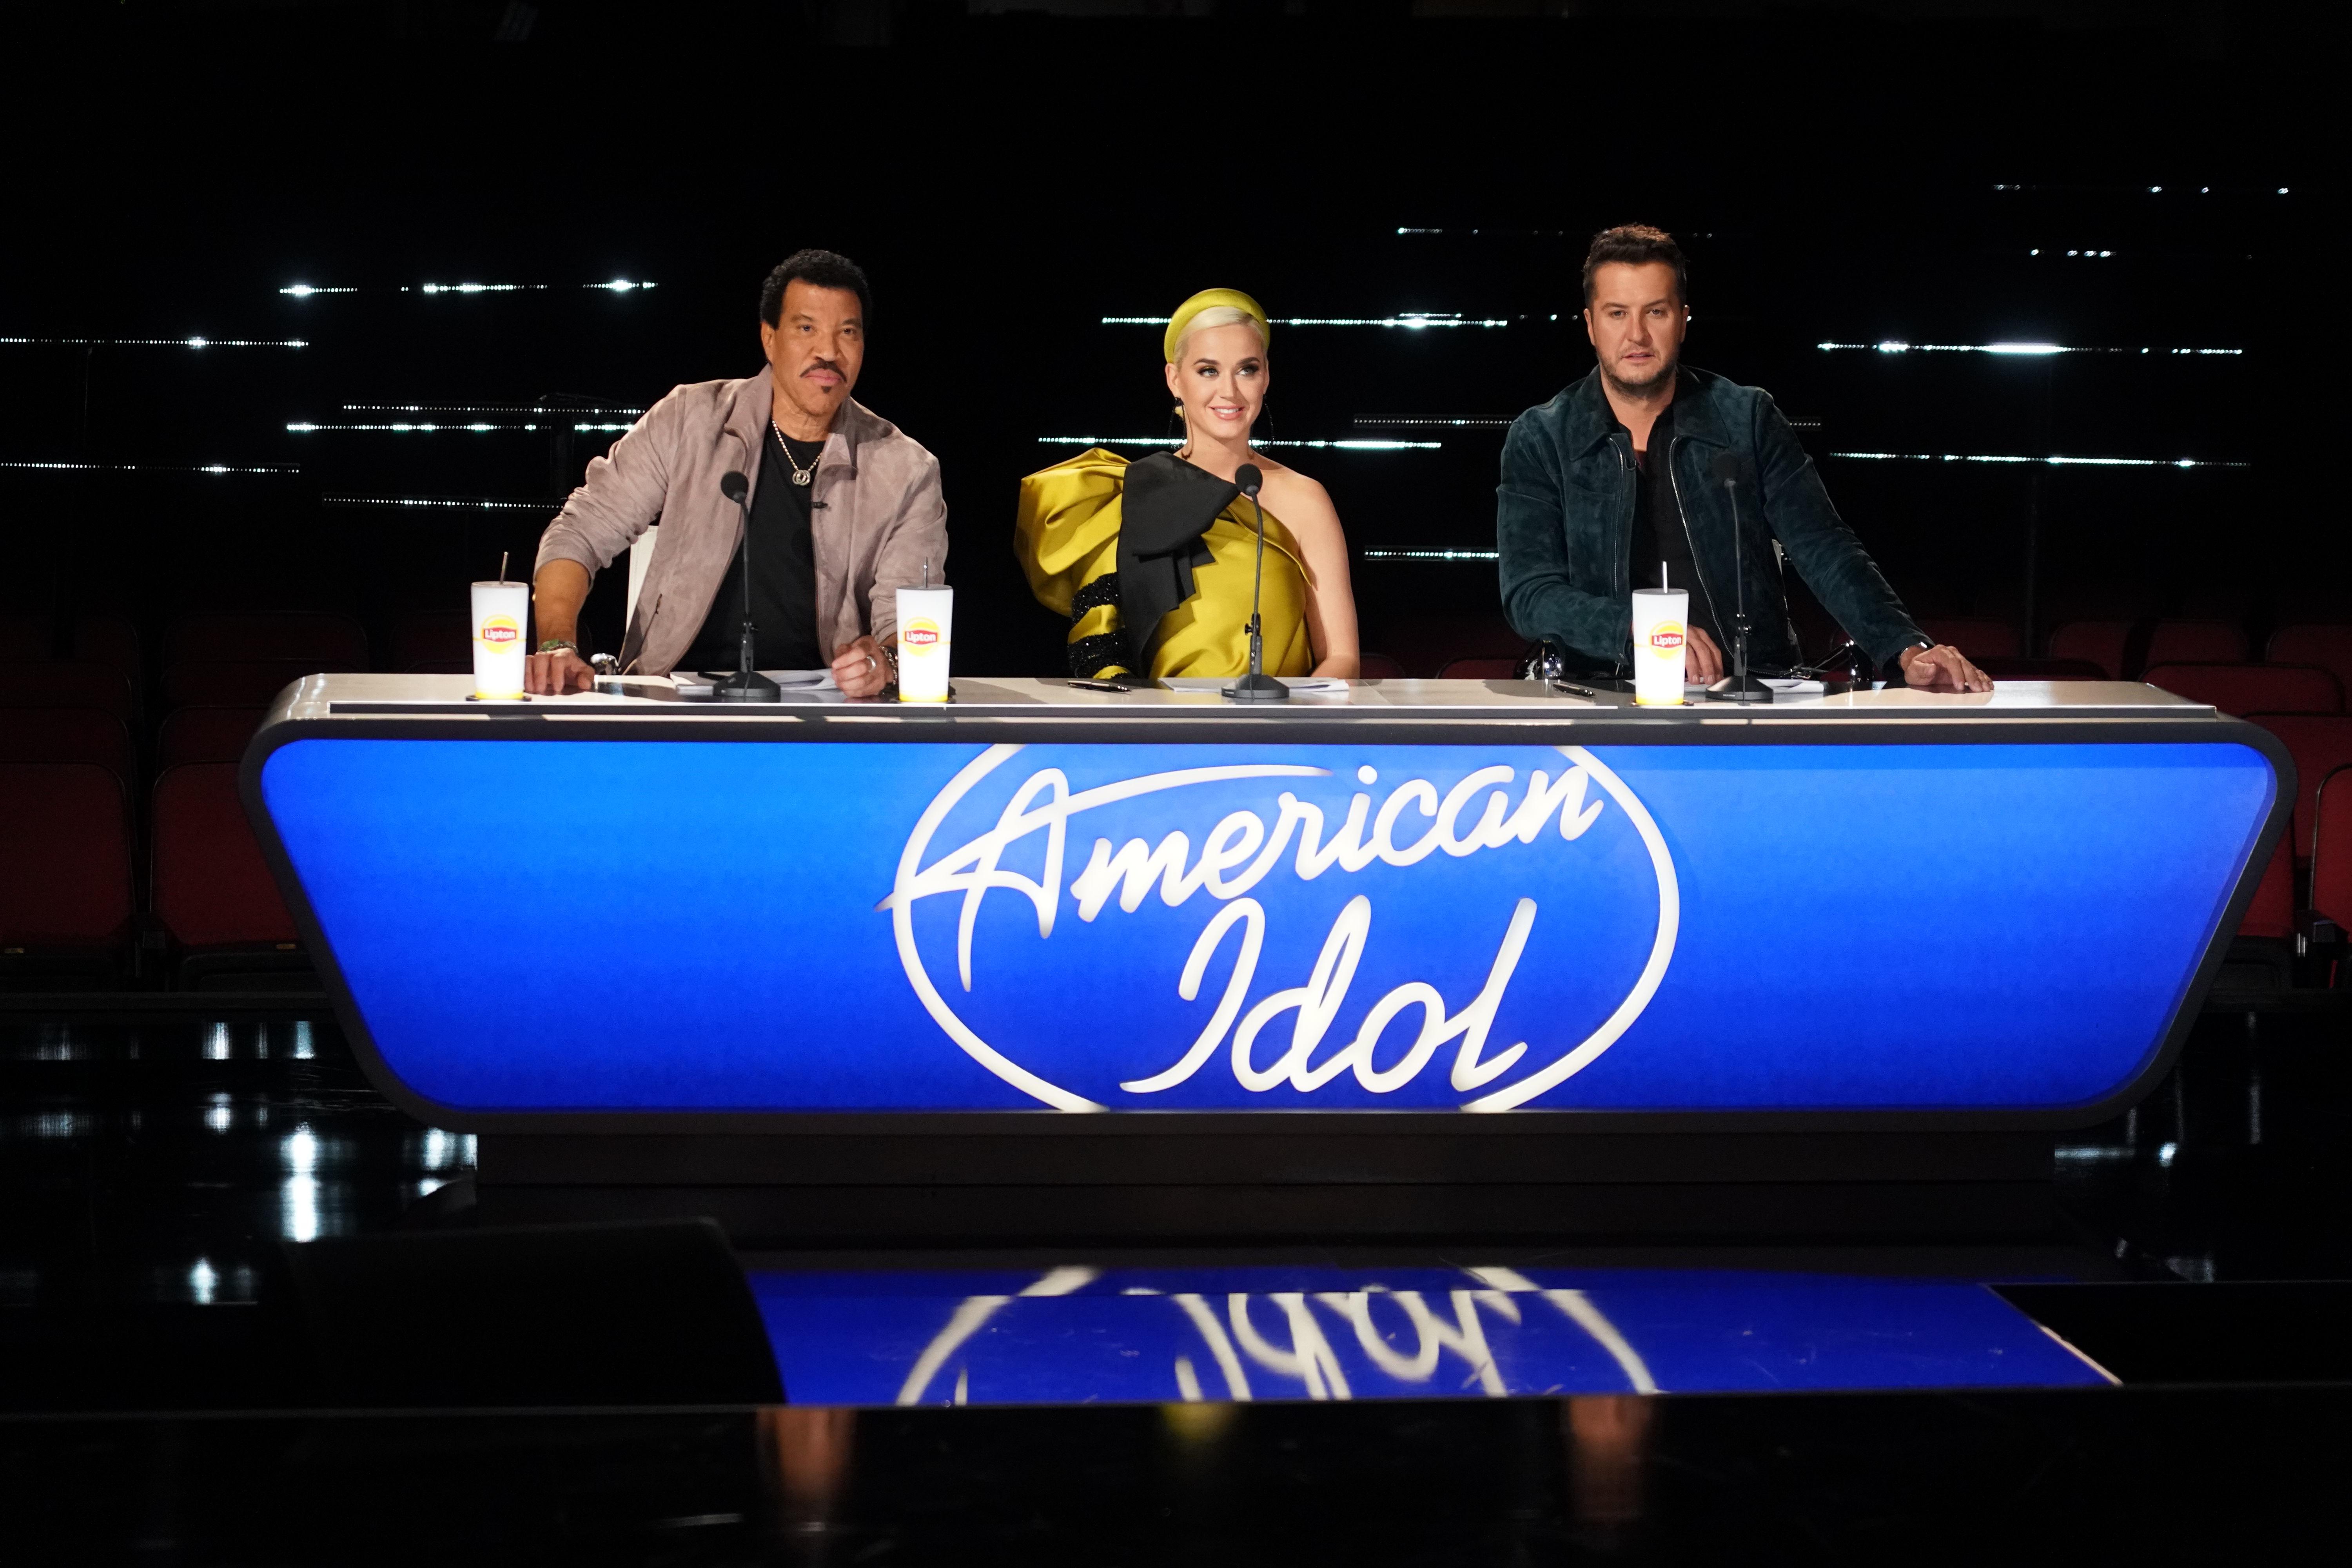 How American Idol Will Remote Broadcast From More Than 40 Locations Variety